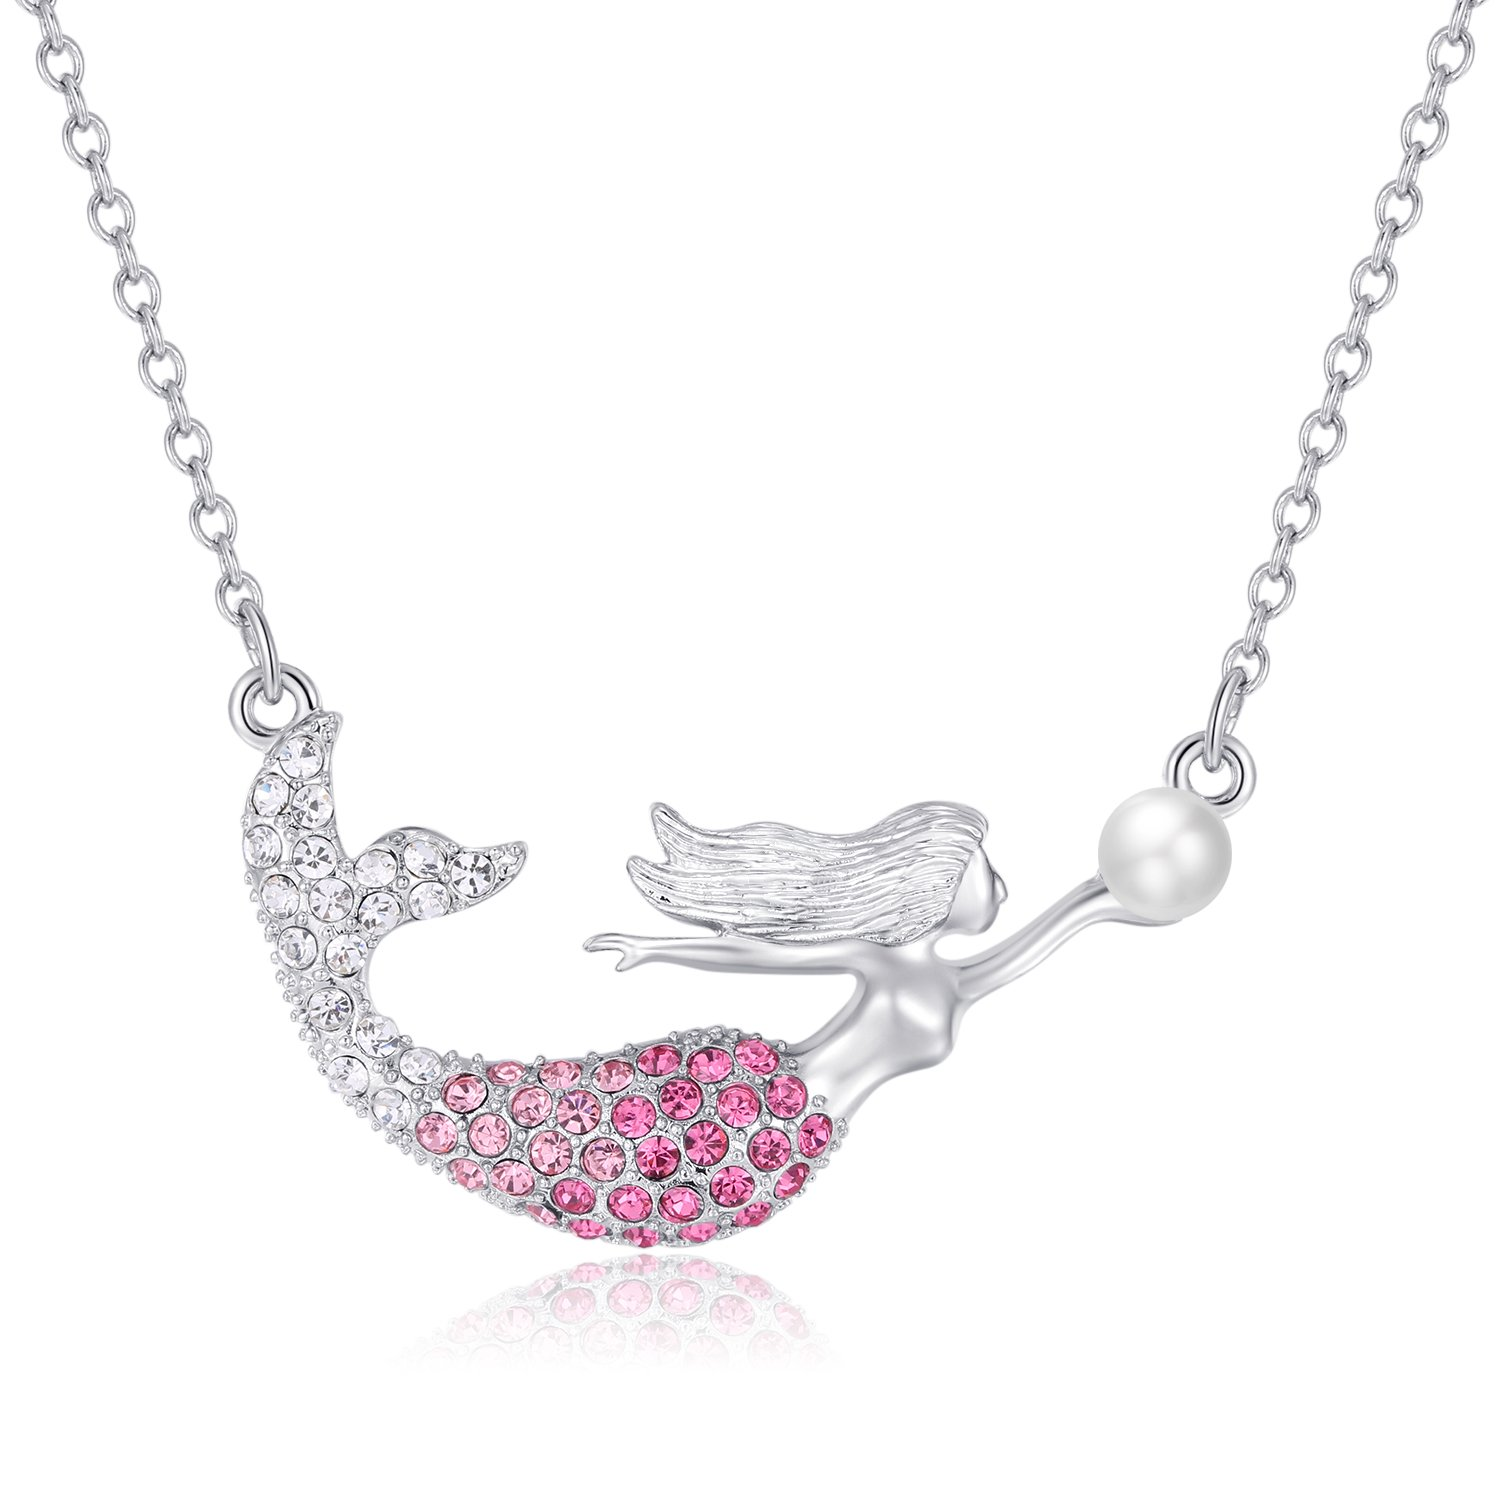 Mermaid Pendant Necklace for Kids Women Girls, Sliver Mermaid Fairytale Crystal Charm Birthday Gift Jewelry with Peal Boosin MER-M-S0